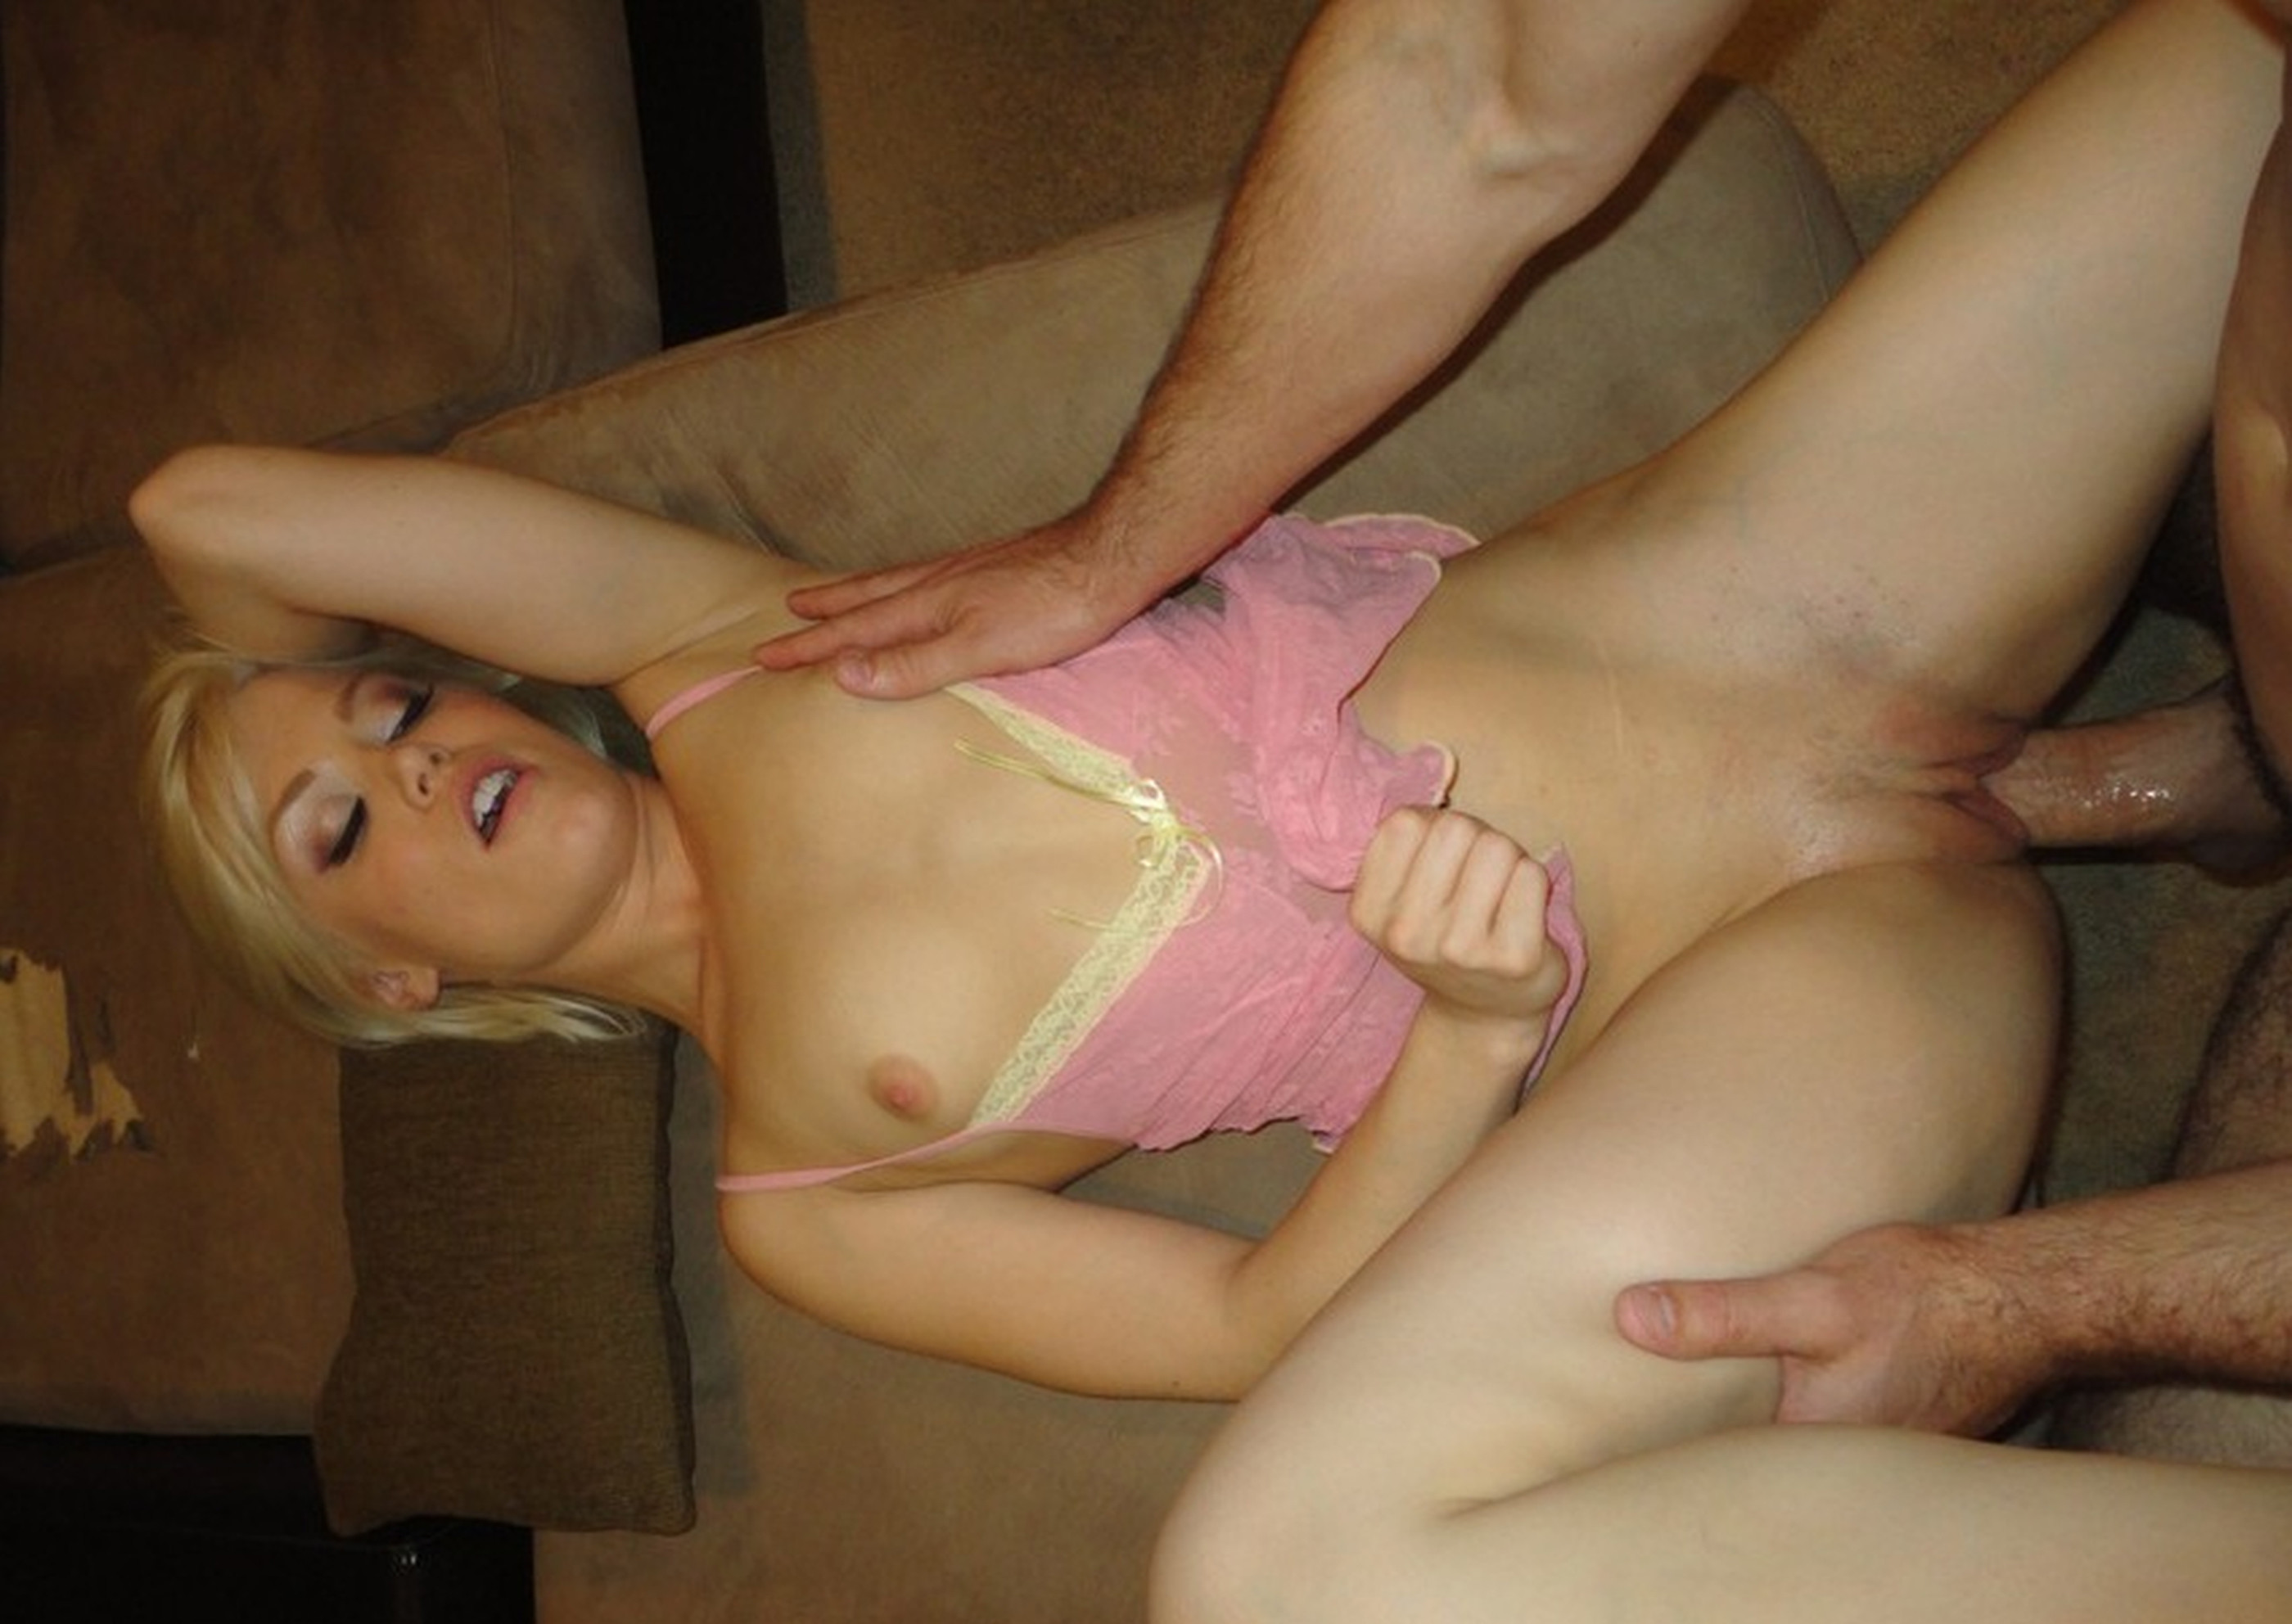 video-seks-s-blondinkoy-chastnoe